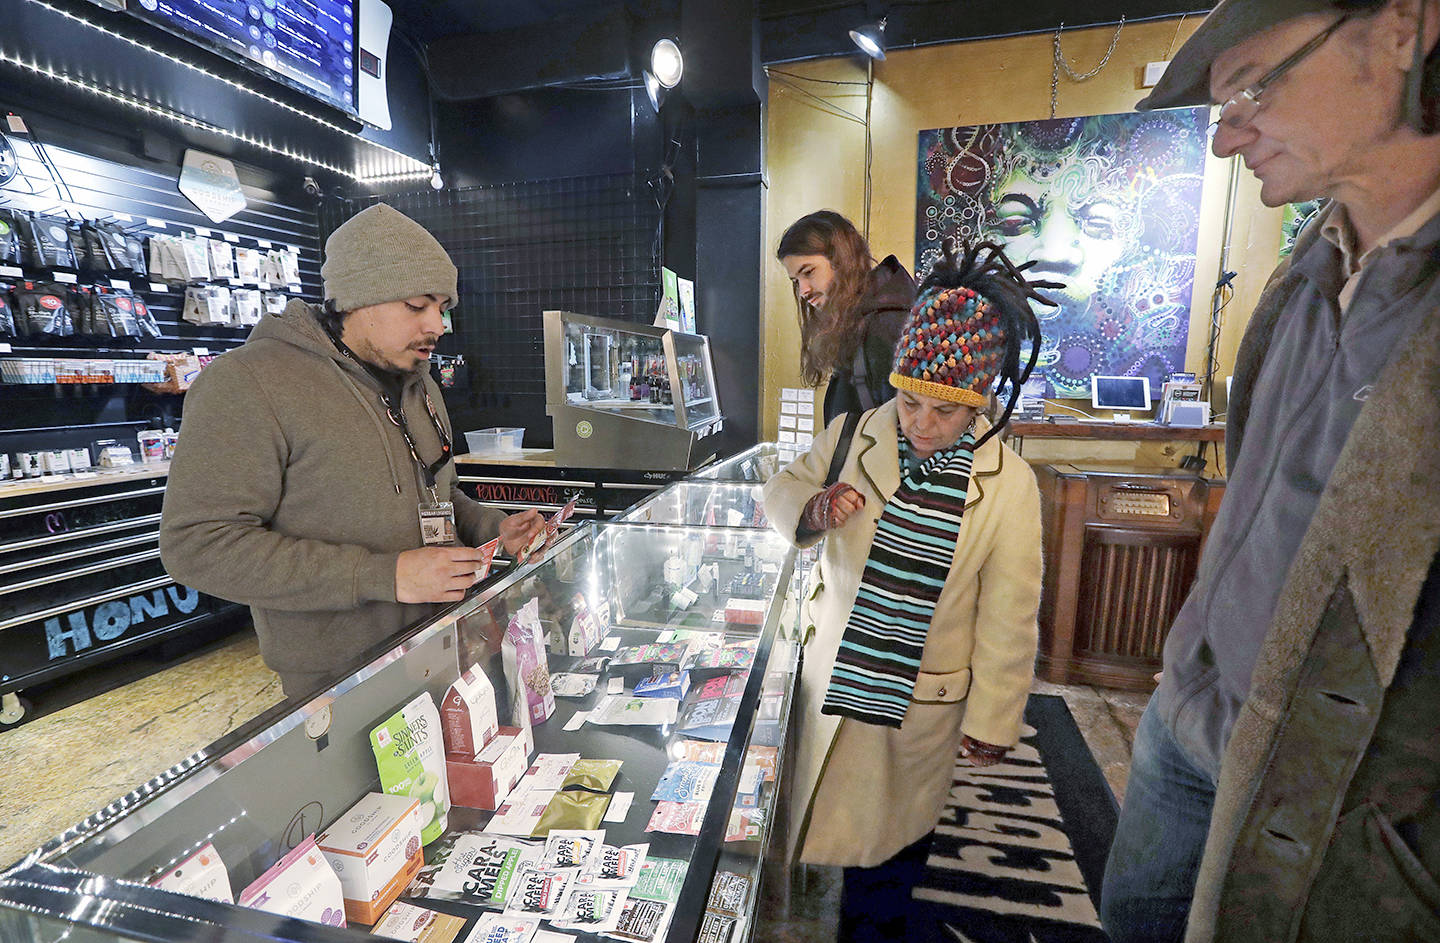 Cannabis consultant assists customers shopping for edible marijuana products in the Herban Legends shop in Seattle, Jan. 4, 2018. Edibles, extracts, vapourizers and beverages are now legal in Canada. (AP Photo/Elaine Thompson)